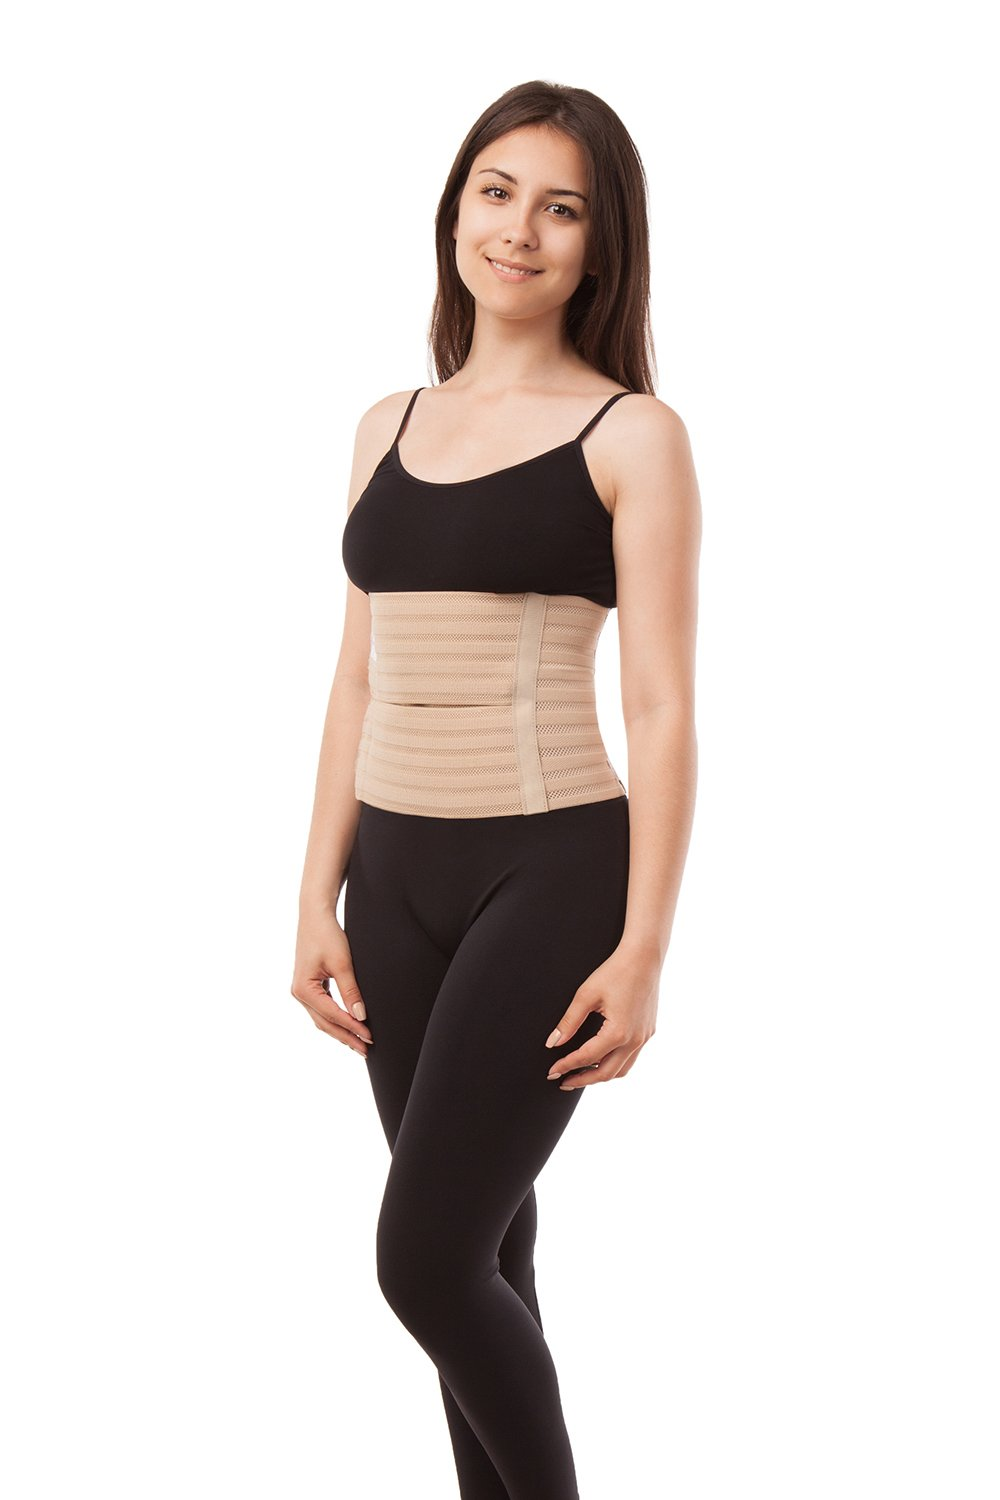 Abdominal Binder - Breathable Medium Support 9 inches